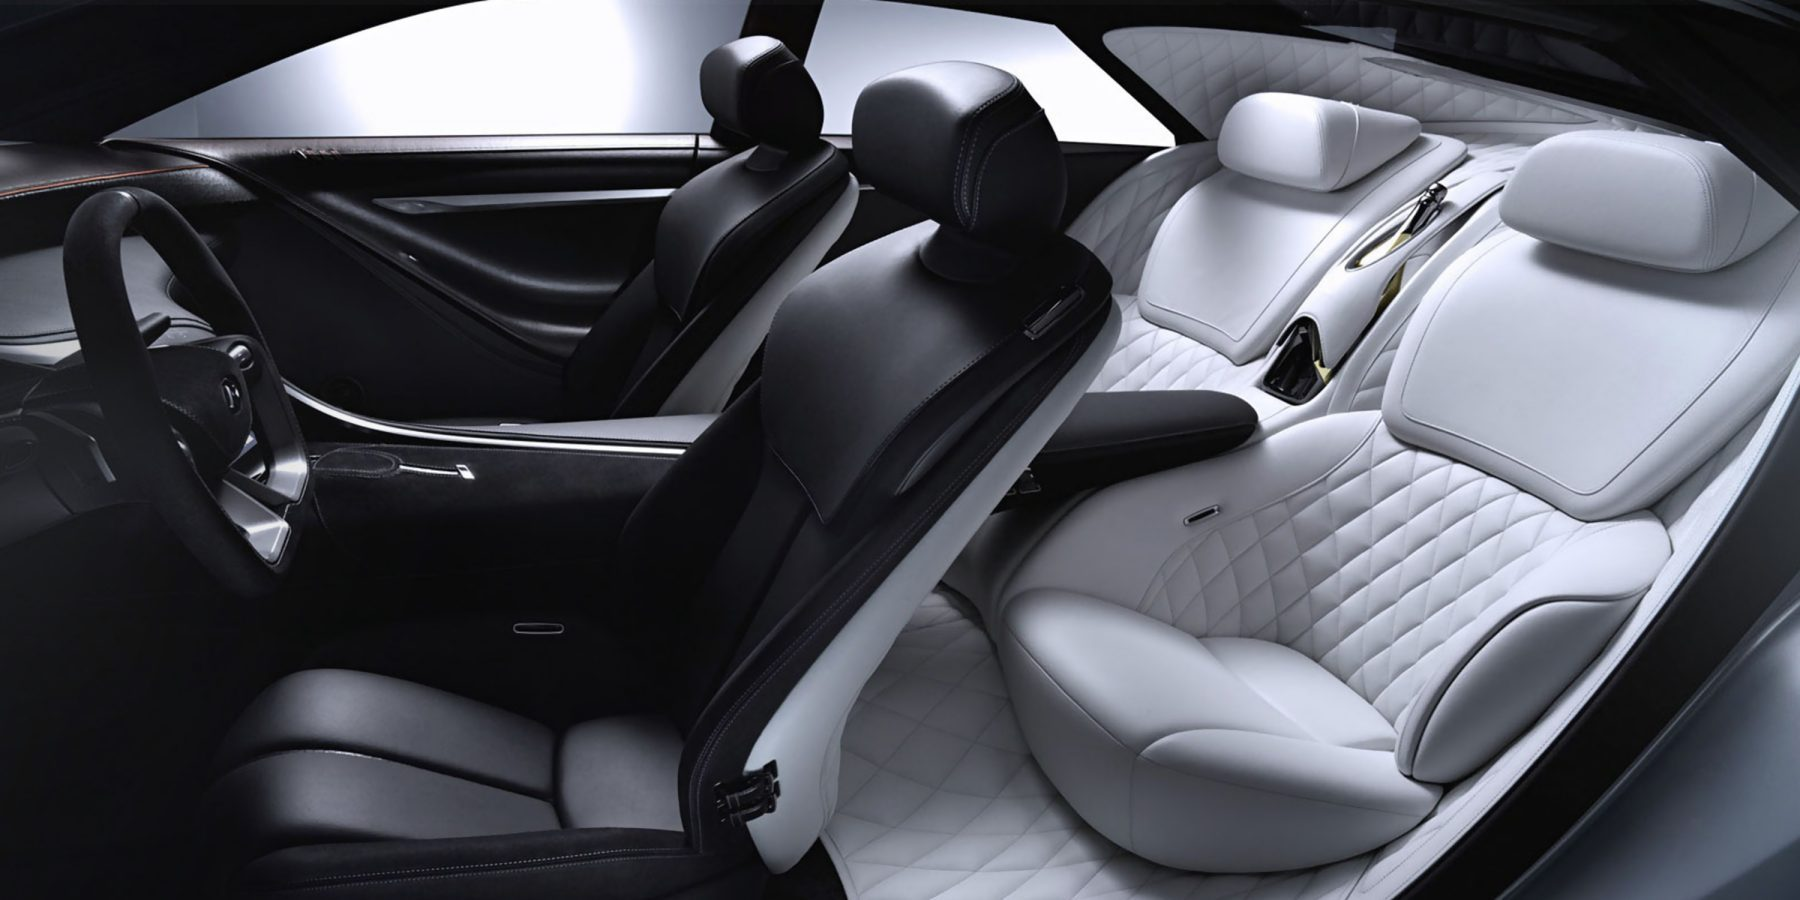 Infiniti concept car interior | Infinity photos